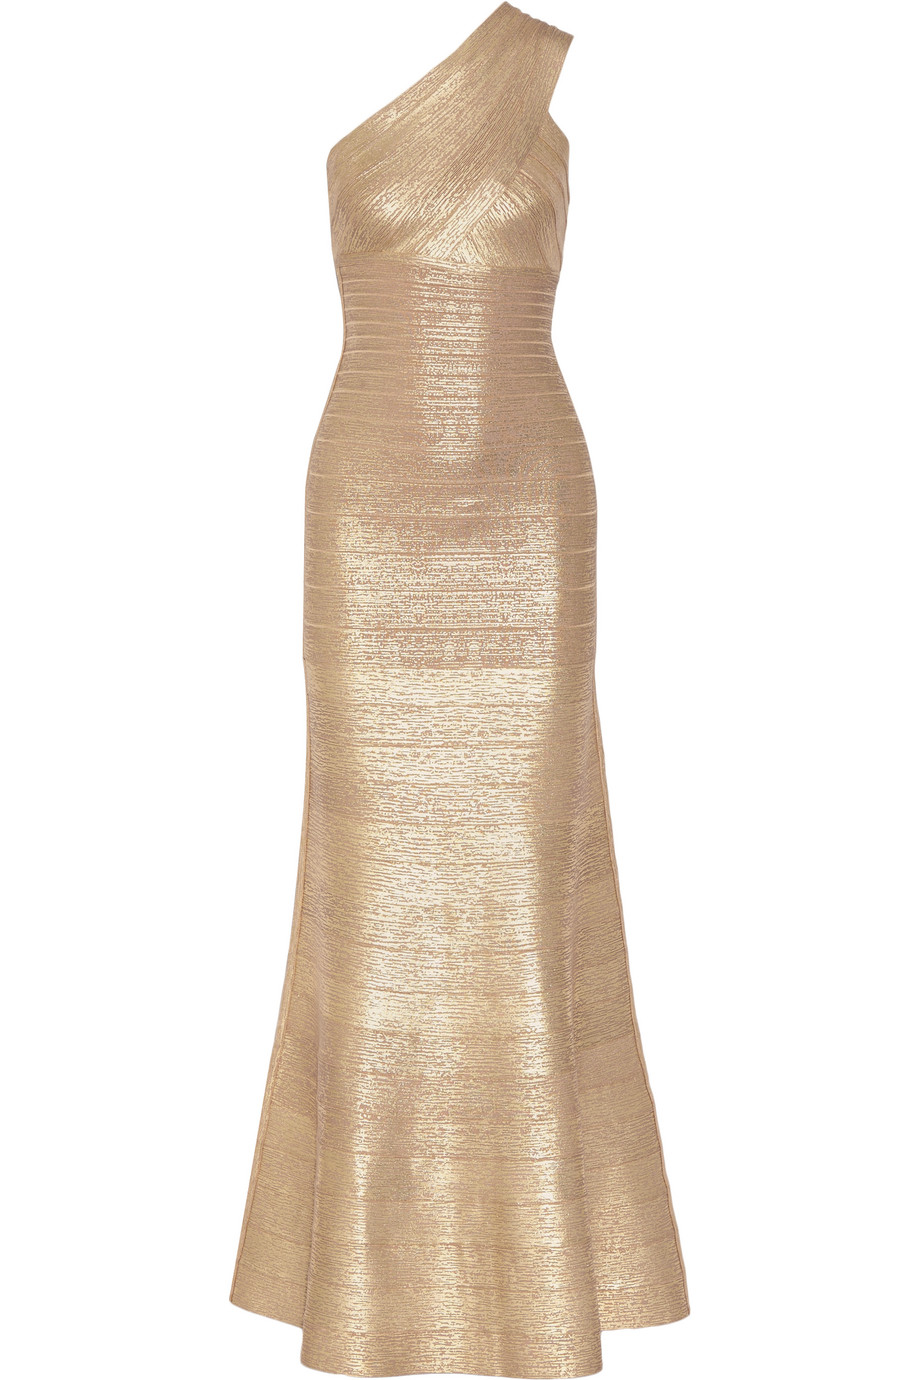 Hervé Léger Lilyanna One-Shoulder Metallic Bandage Gown, Gold, Women's